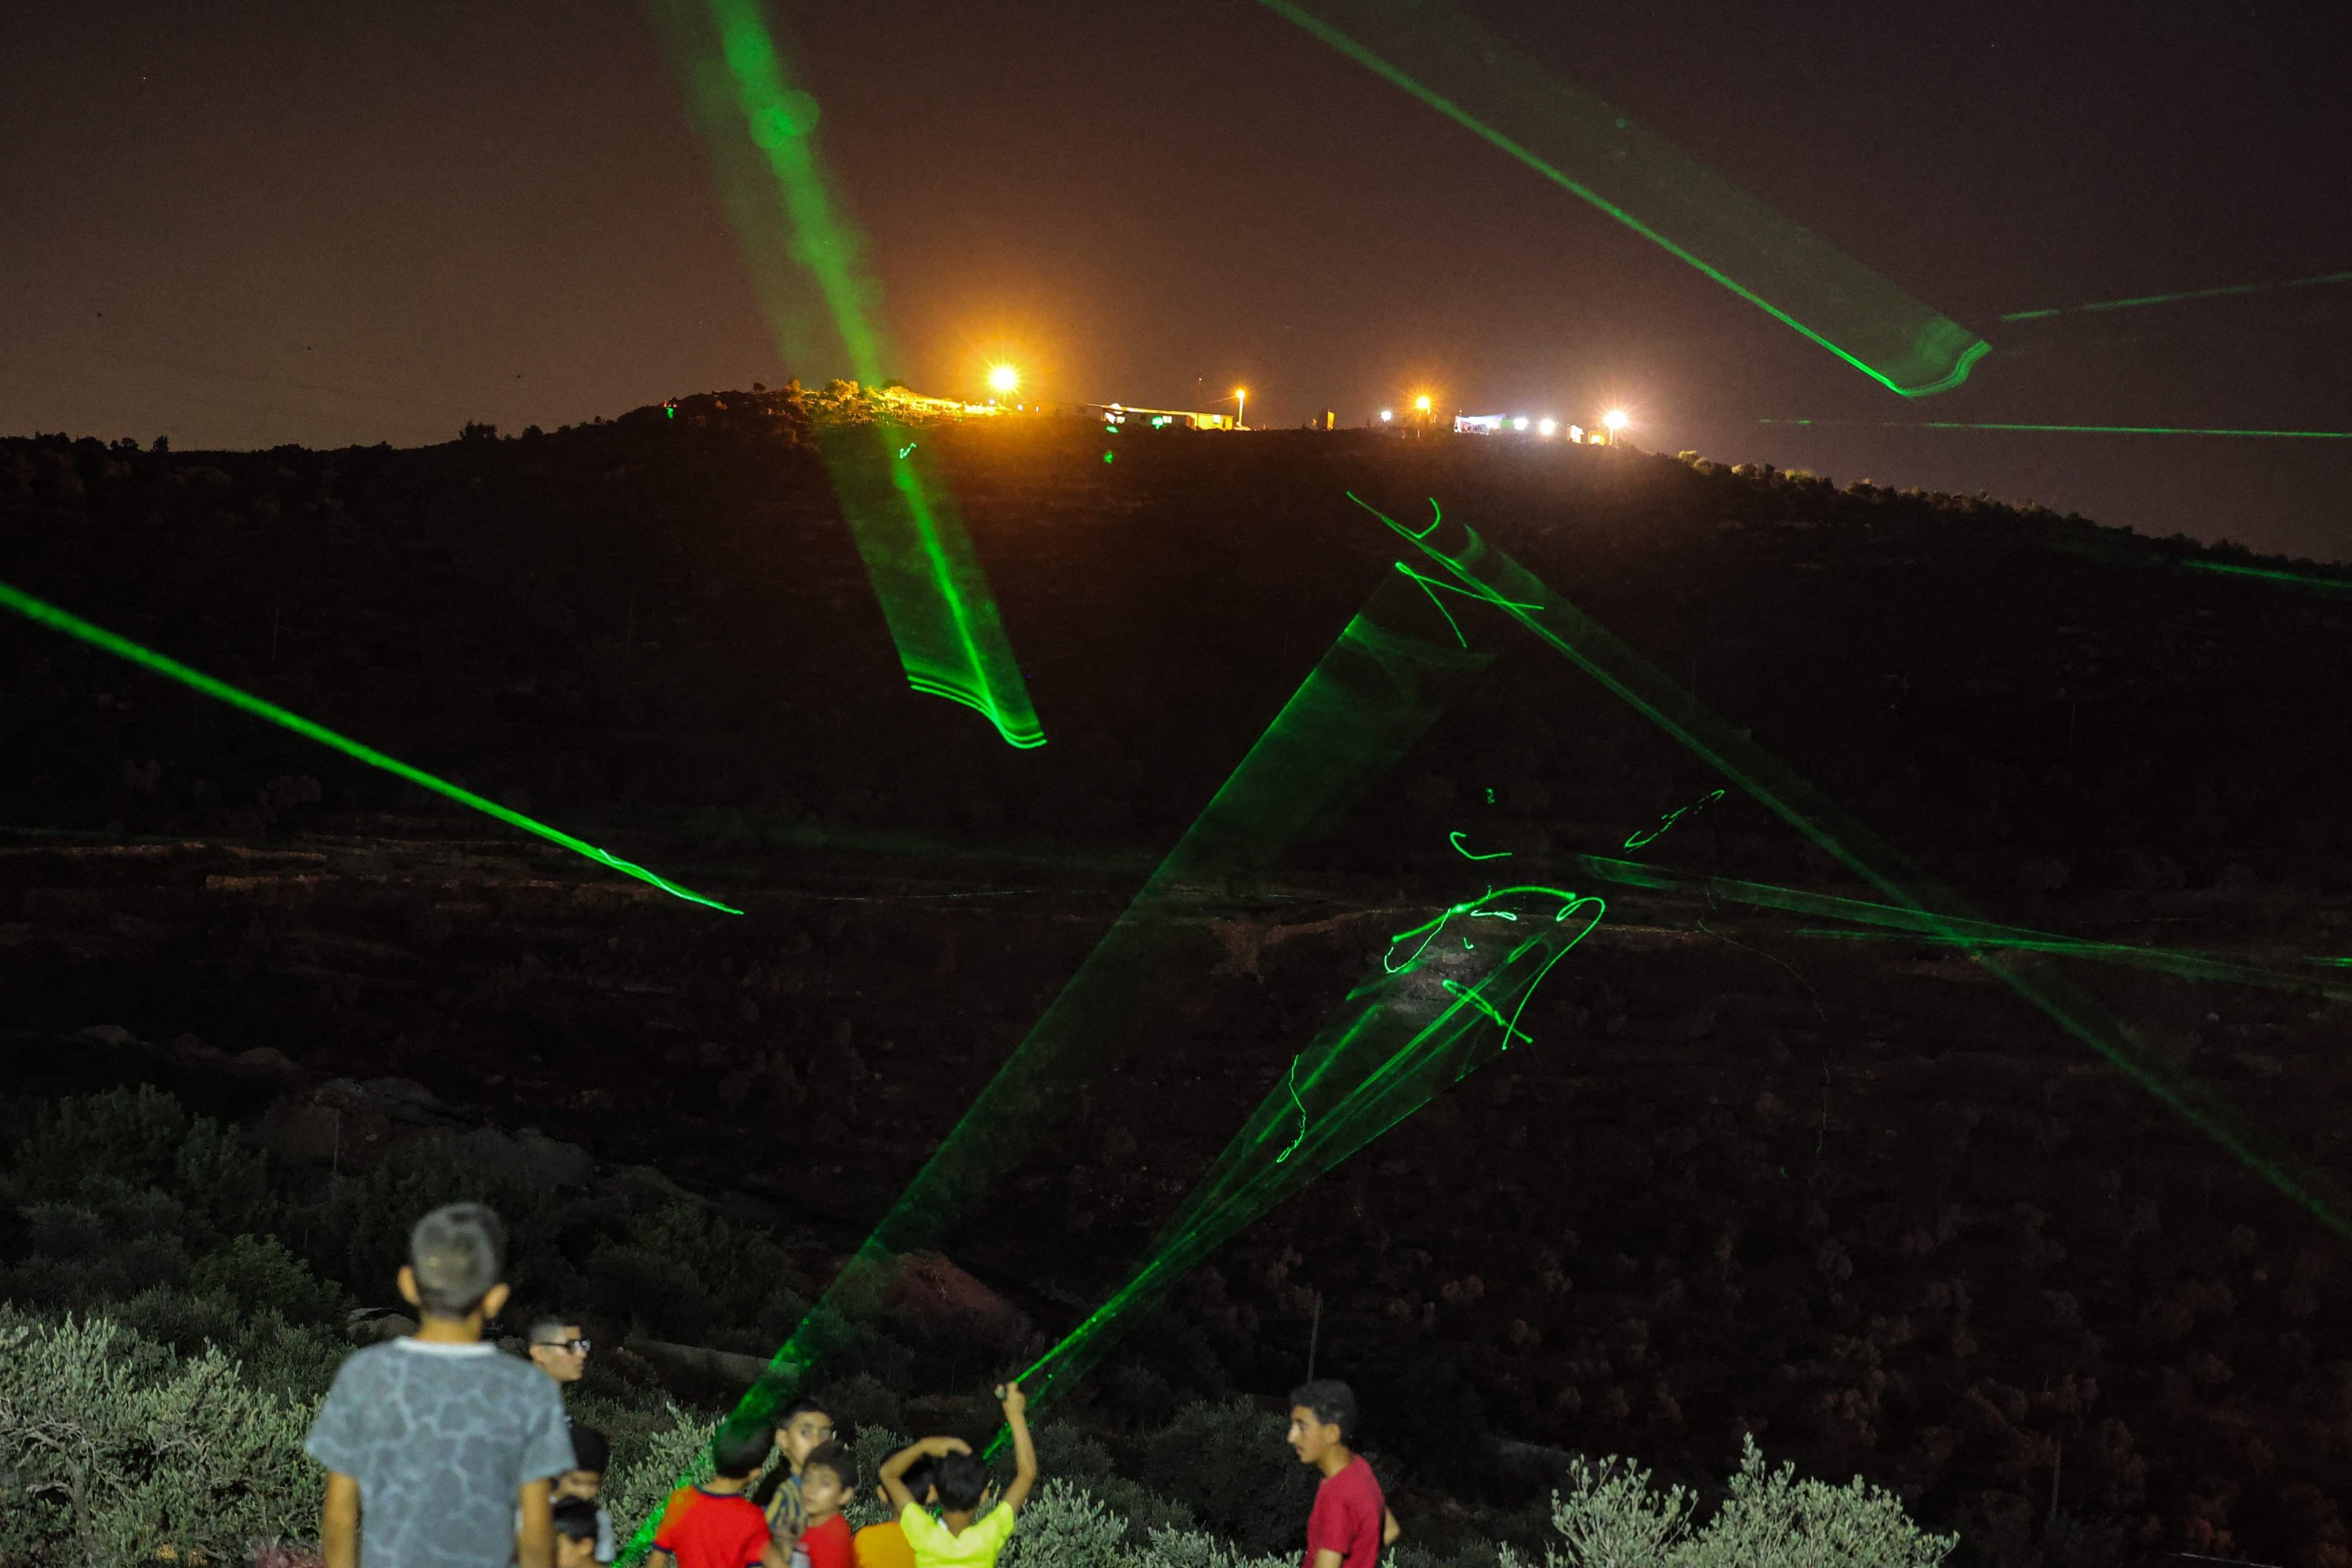 Palestinian protesters use high-powered lasers against the Israeli illegal settlers' outpost of Eviatar, the West Bank, occupied Palestine, July 1, 2021. (AFP Photo)